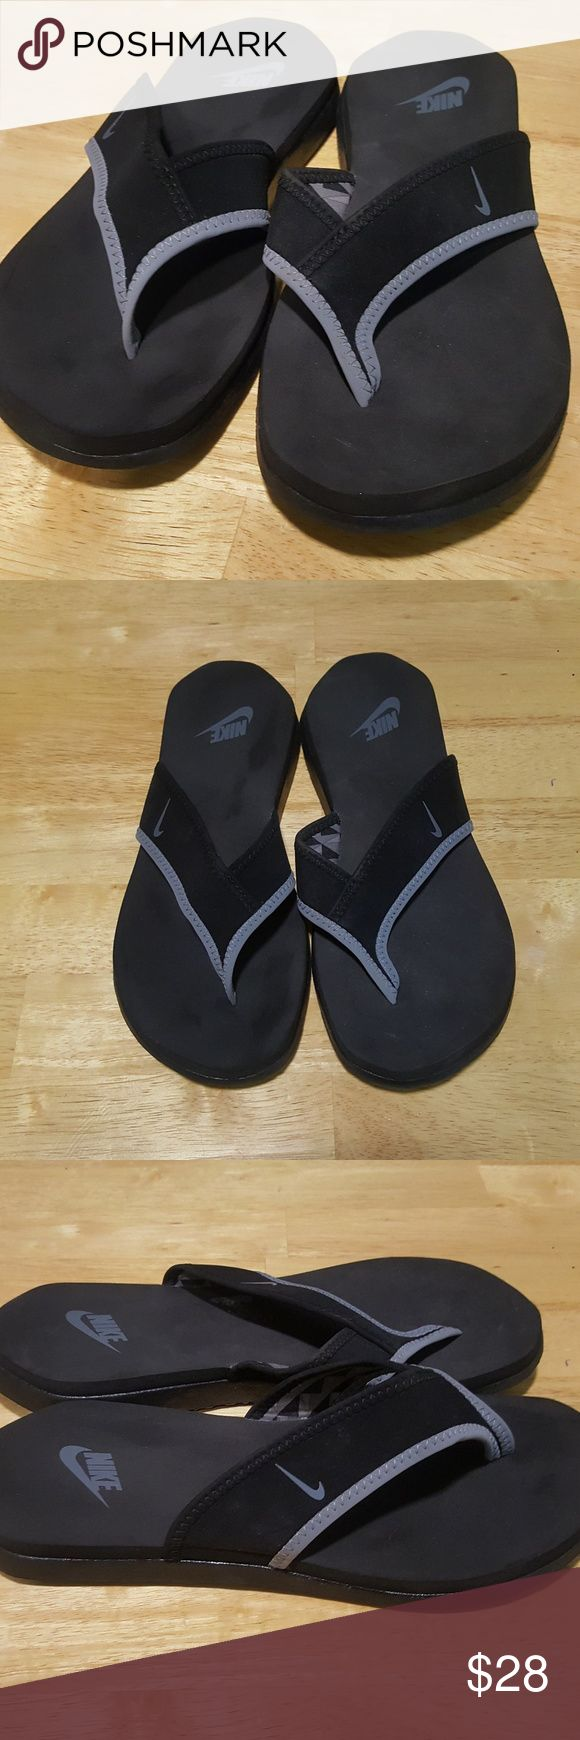 NWOT / NIKE black & grey flip flops the perfect flip flop from NIKE. black & grey flip flops w/ neoprene strap. size: 7.  NWOT condition  THANK-YOU! OPEN TO OFFERS ANY QUESTIONS?...JUST ASK CHECK OUT MY OTHER LISTINGS NIKE Shoes Sandals